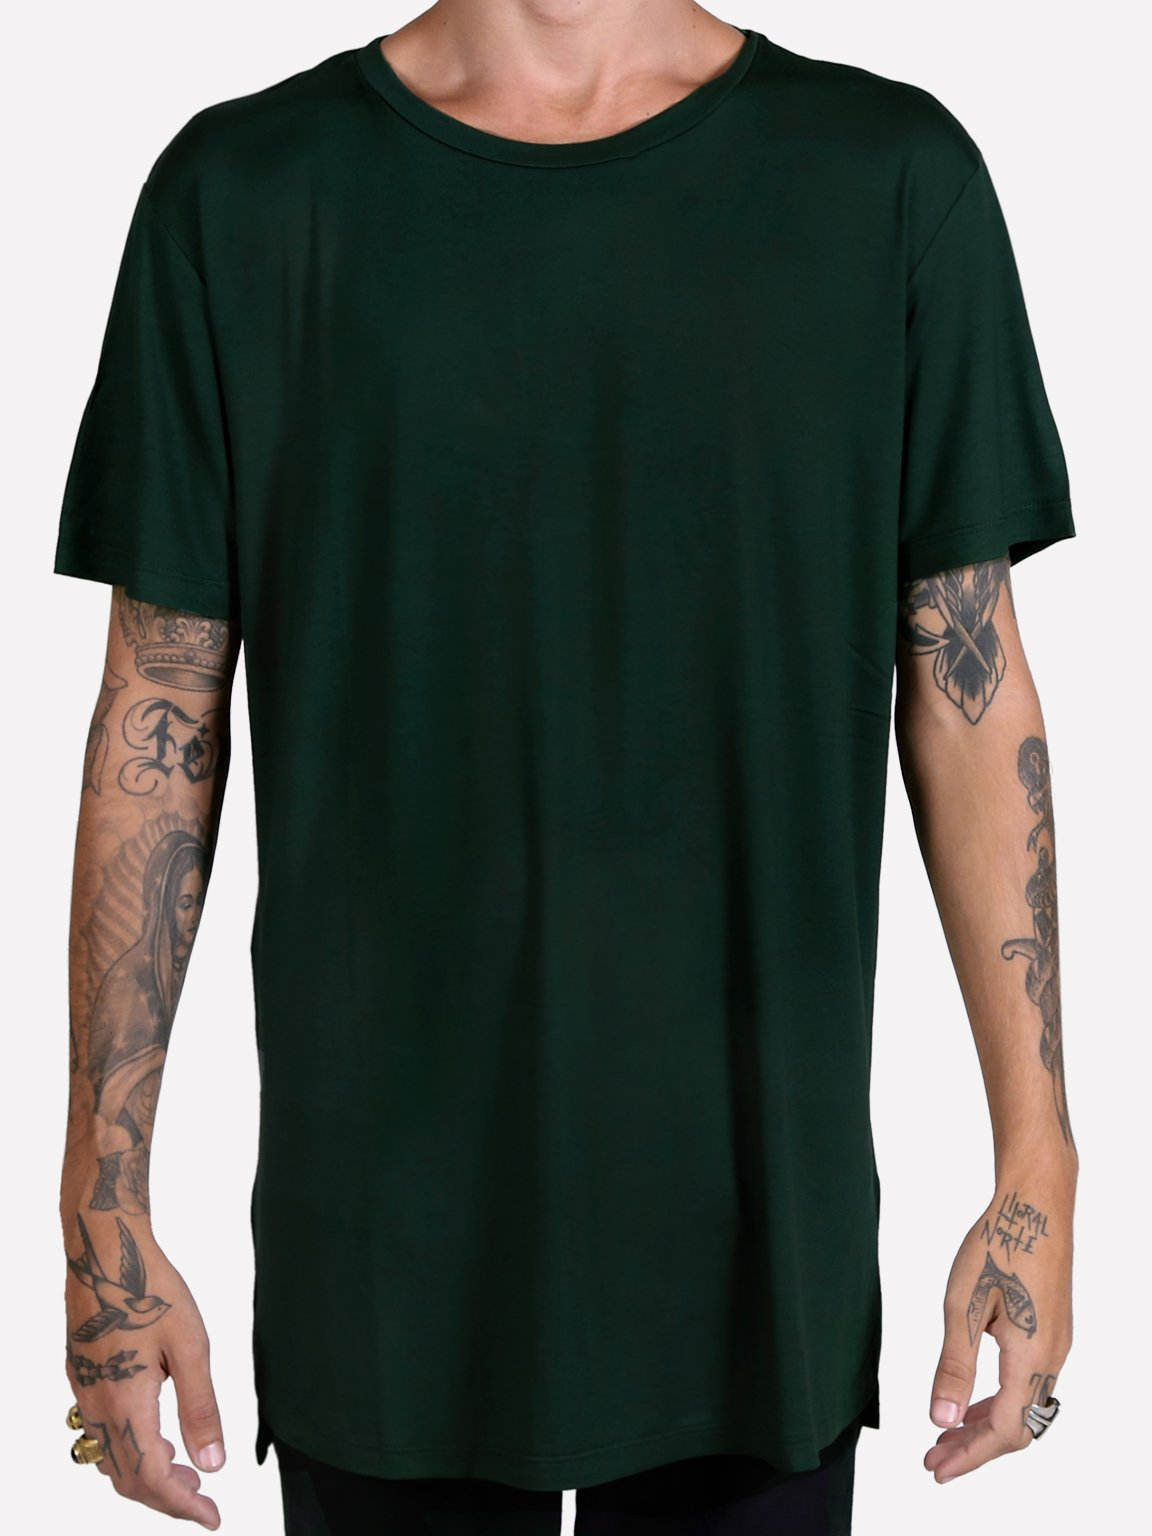 Foto do Camiseta Oliv Long Tee // Verde